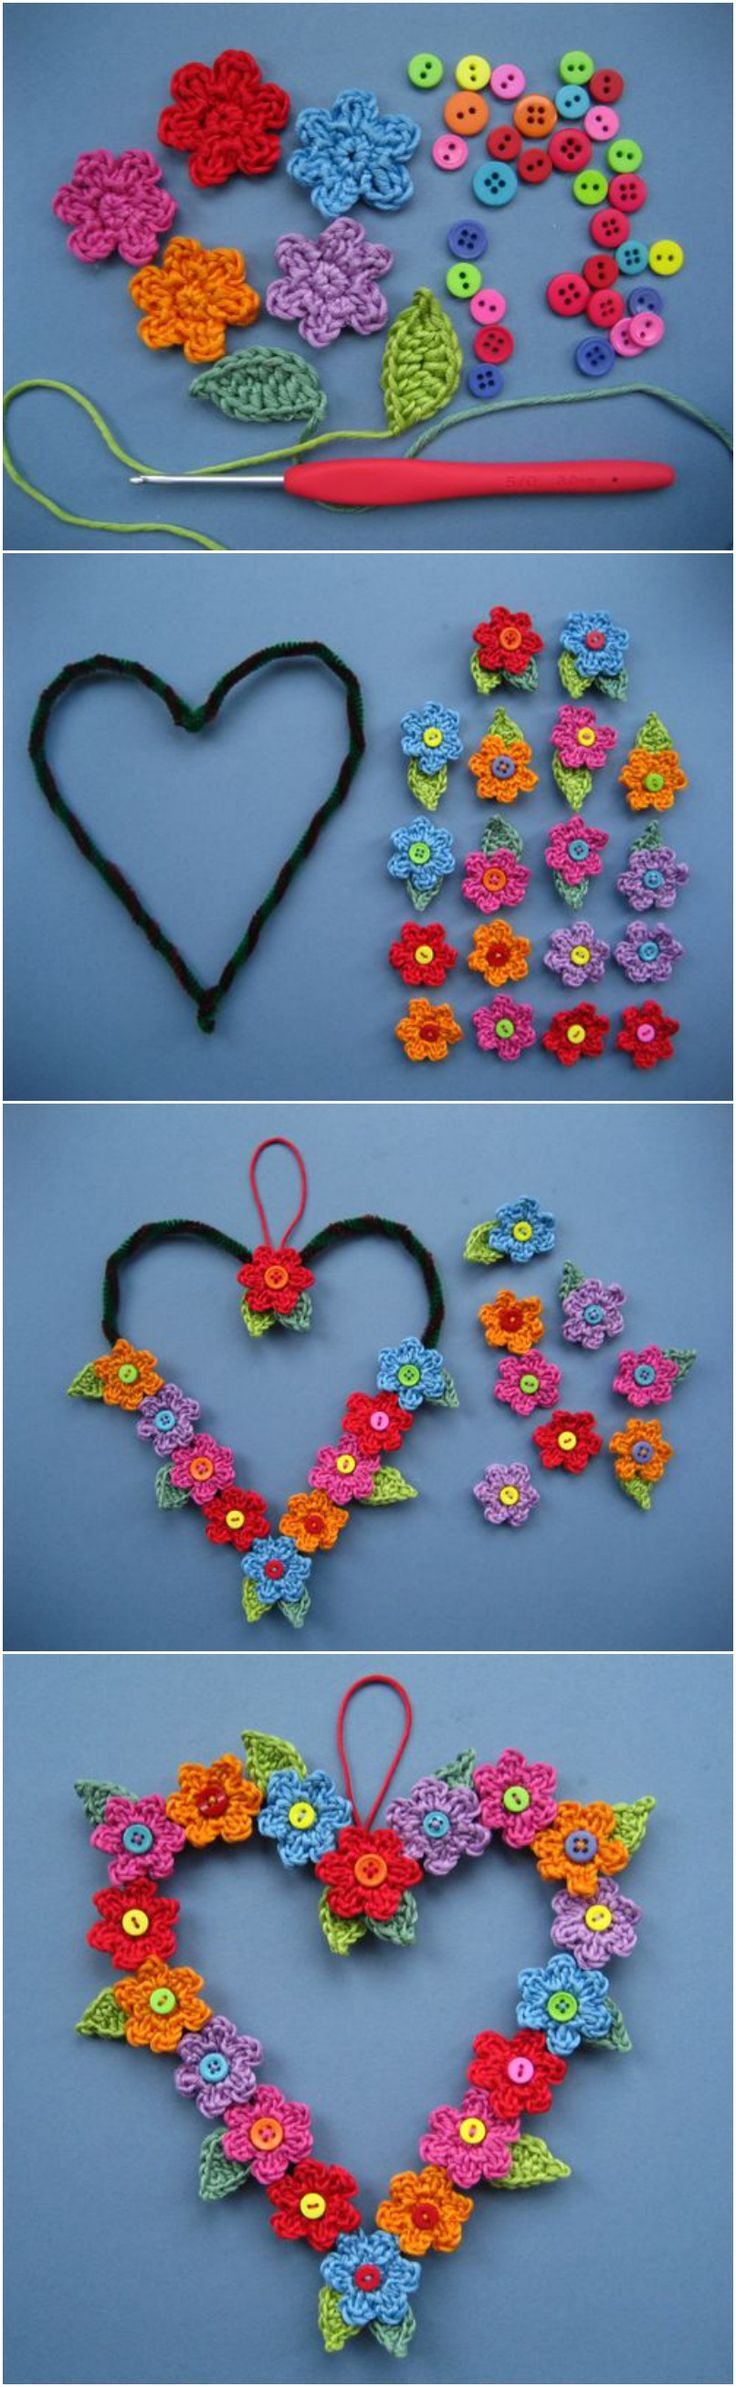 How to Crochet Wreaths -